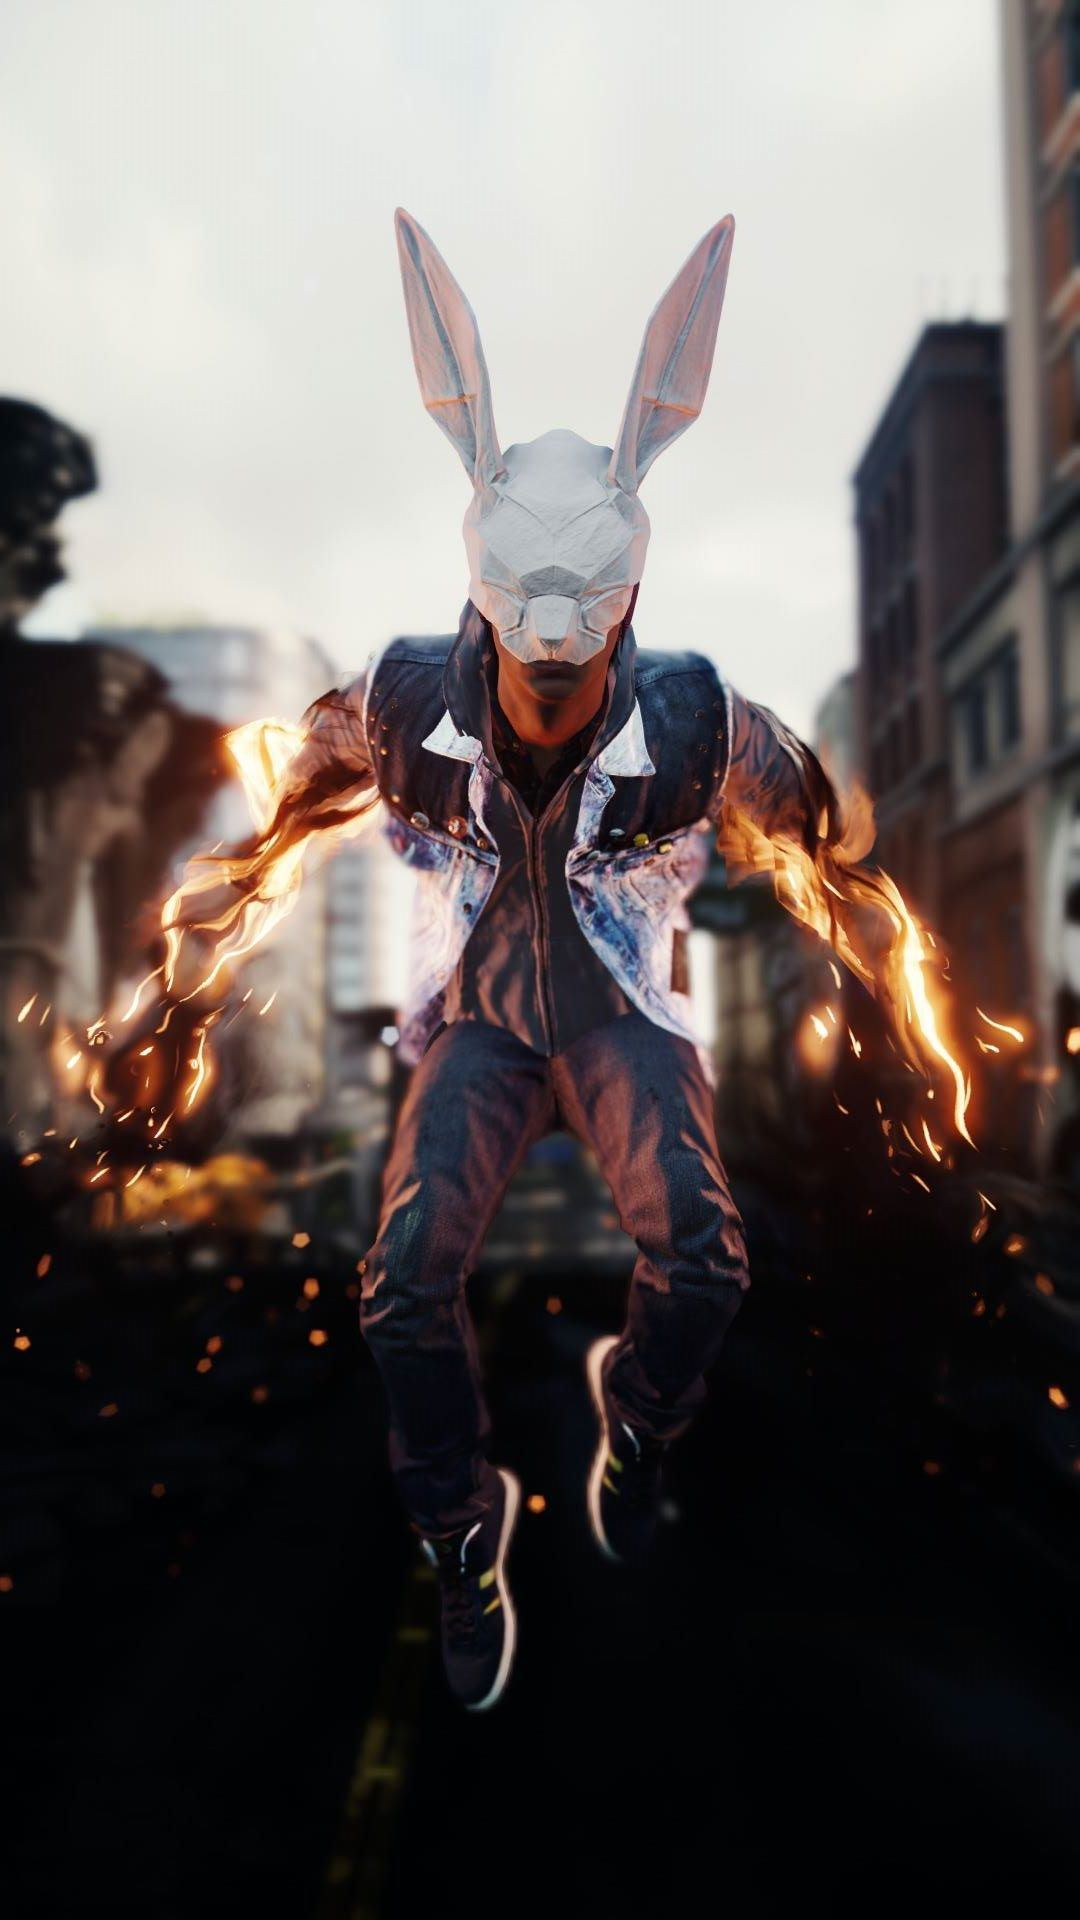 Another Anime Wallpaper Infamous Second Son Art Contest Result Announced Fan